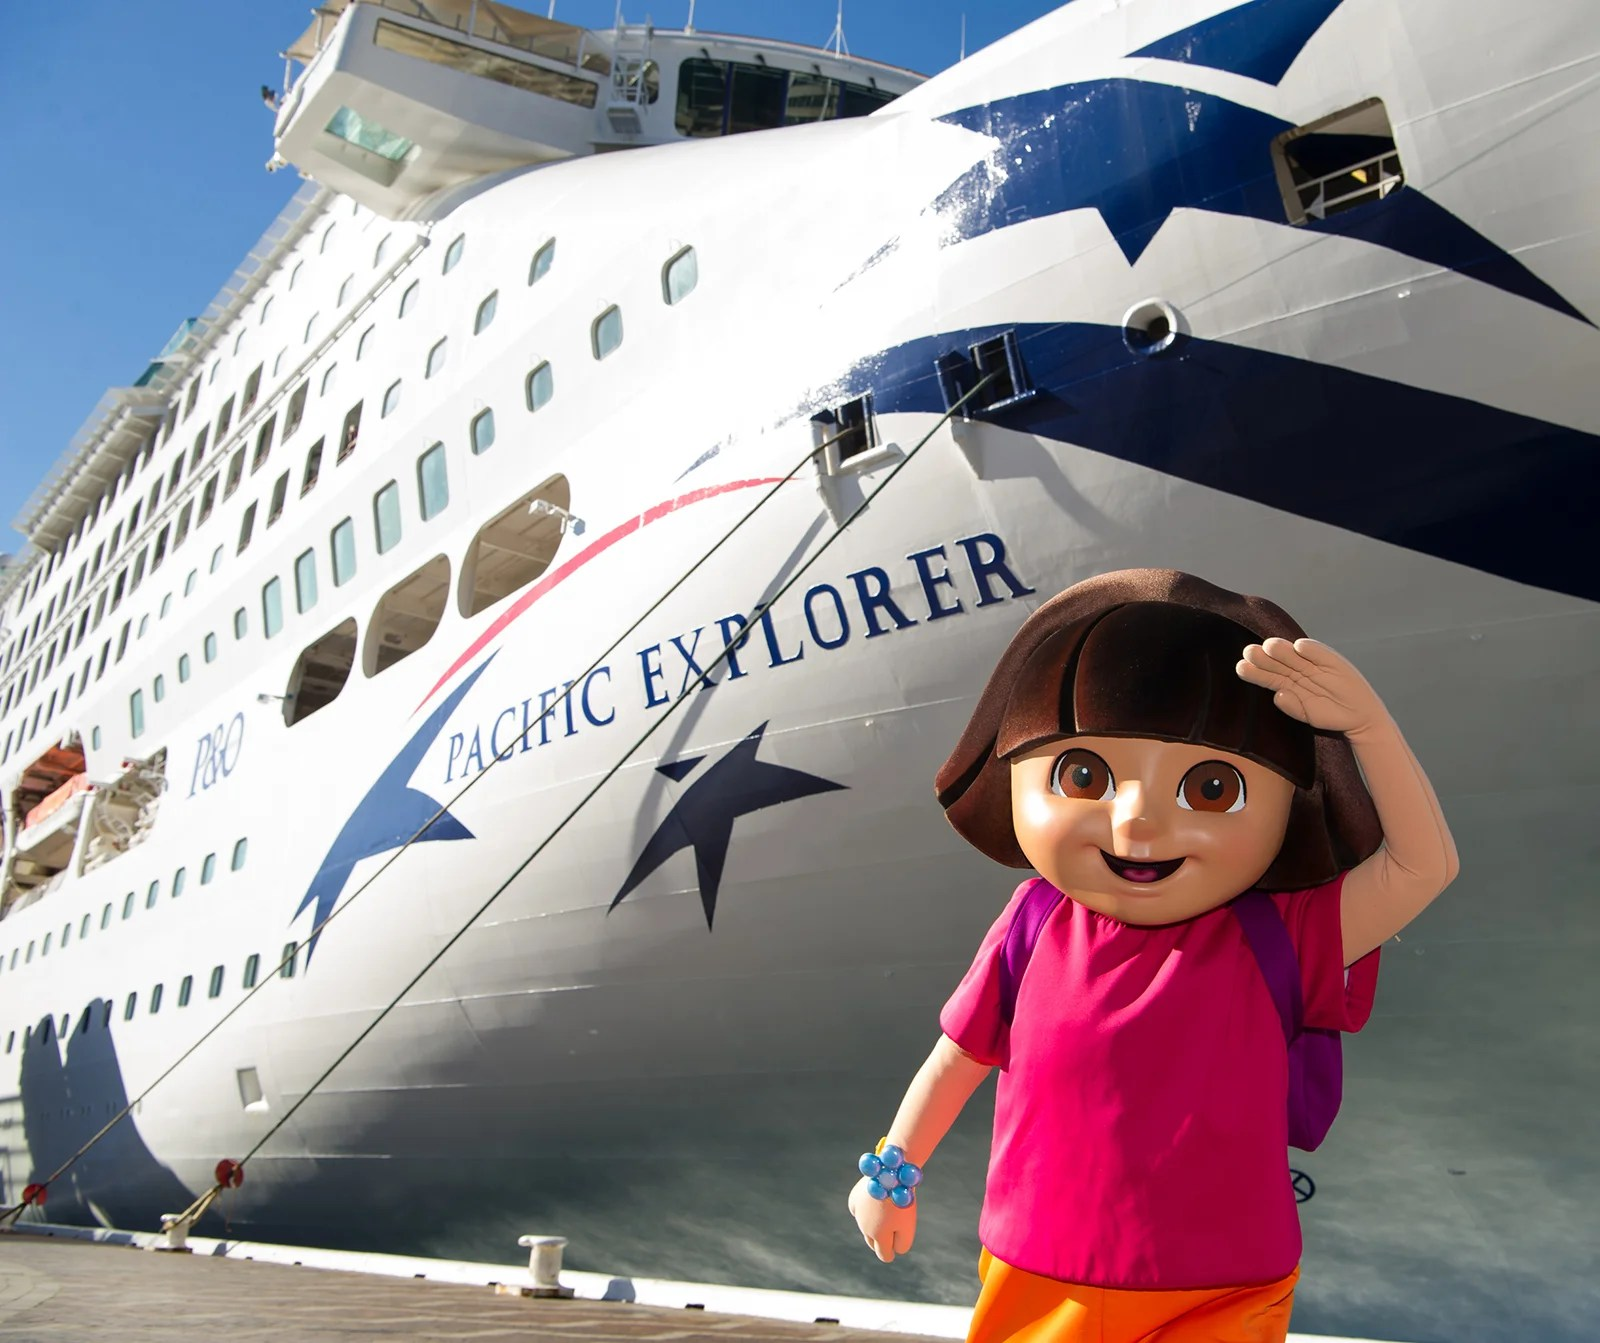 SYDNEY, AUSTRALIA - JULY 02:  Dora the Explorer with the Pacific Explorer during the official naming ceremony of P&O's newest ship 'Pacific Explorer' at the Overseas Passenger Terminal on July 2, 2017 in Sydney, Australia. Dora the Explorer was named as the ships godmother and Nickelodeon arranged some special slime for the occasion.  (Photo by James D. Morgan/Getty Images)